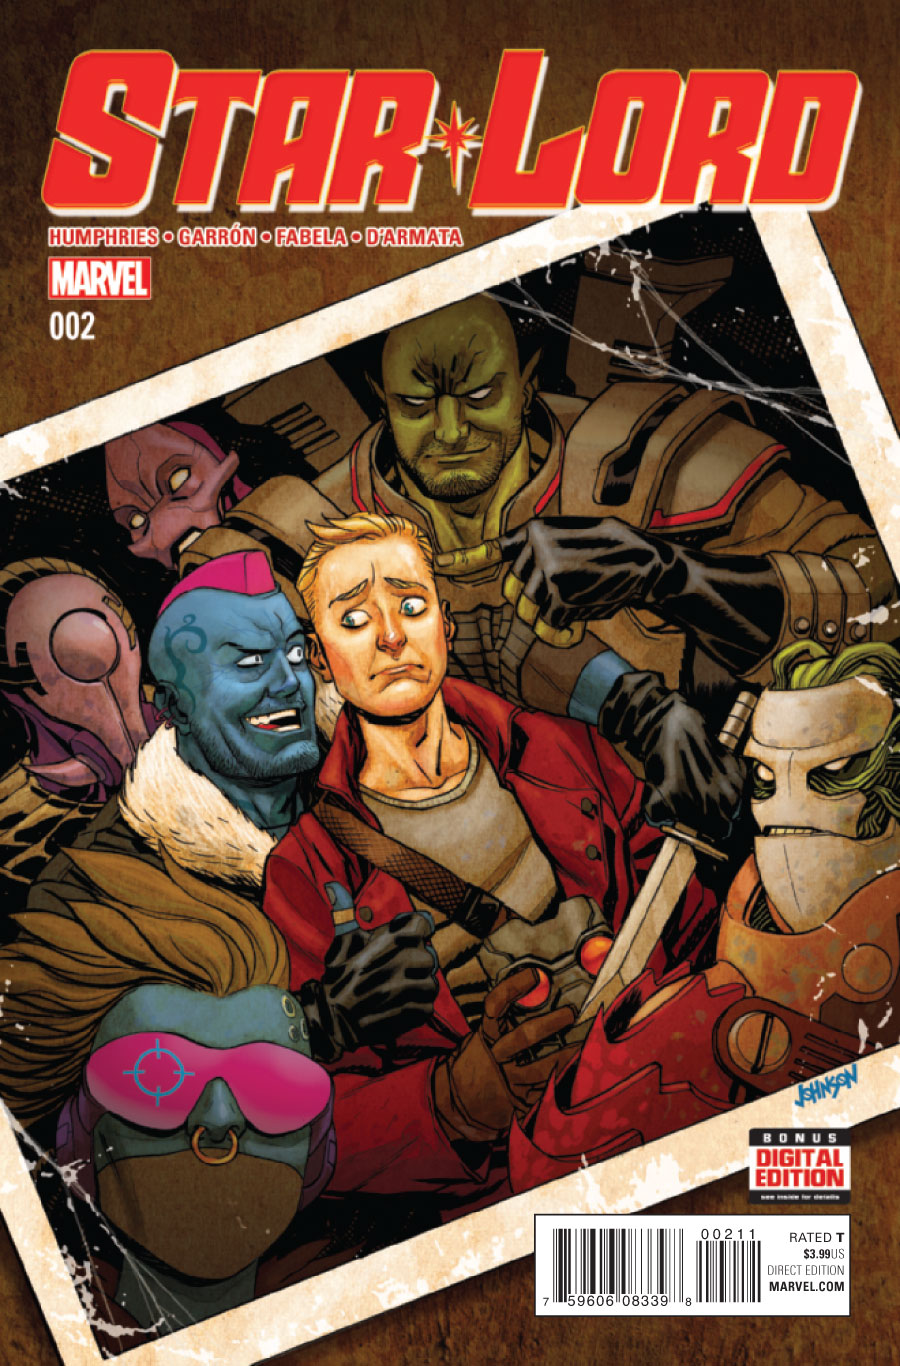 Star-Lord Vol 1 2 | Marvel Database | FANDOM powered by Wikia